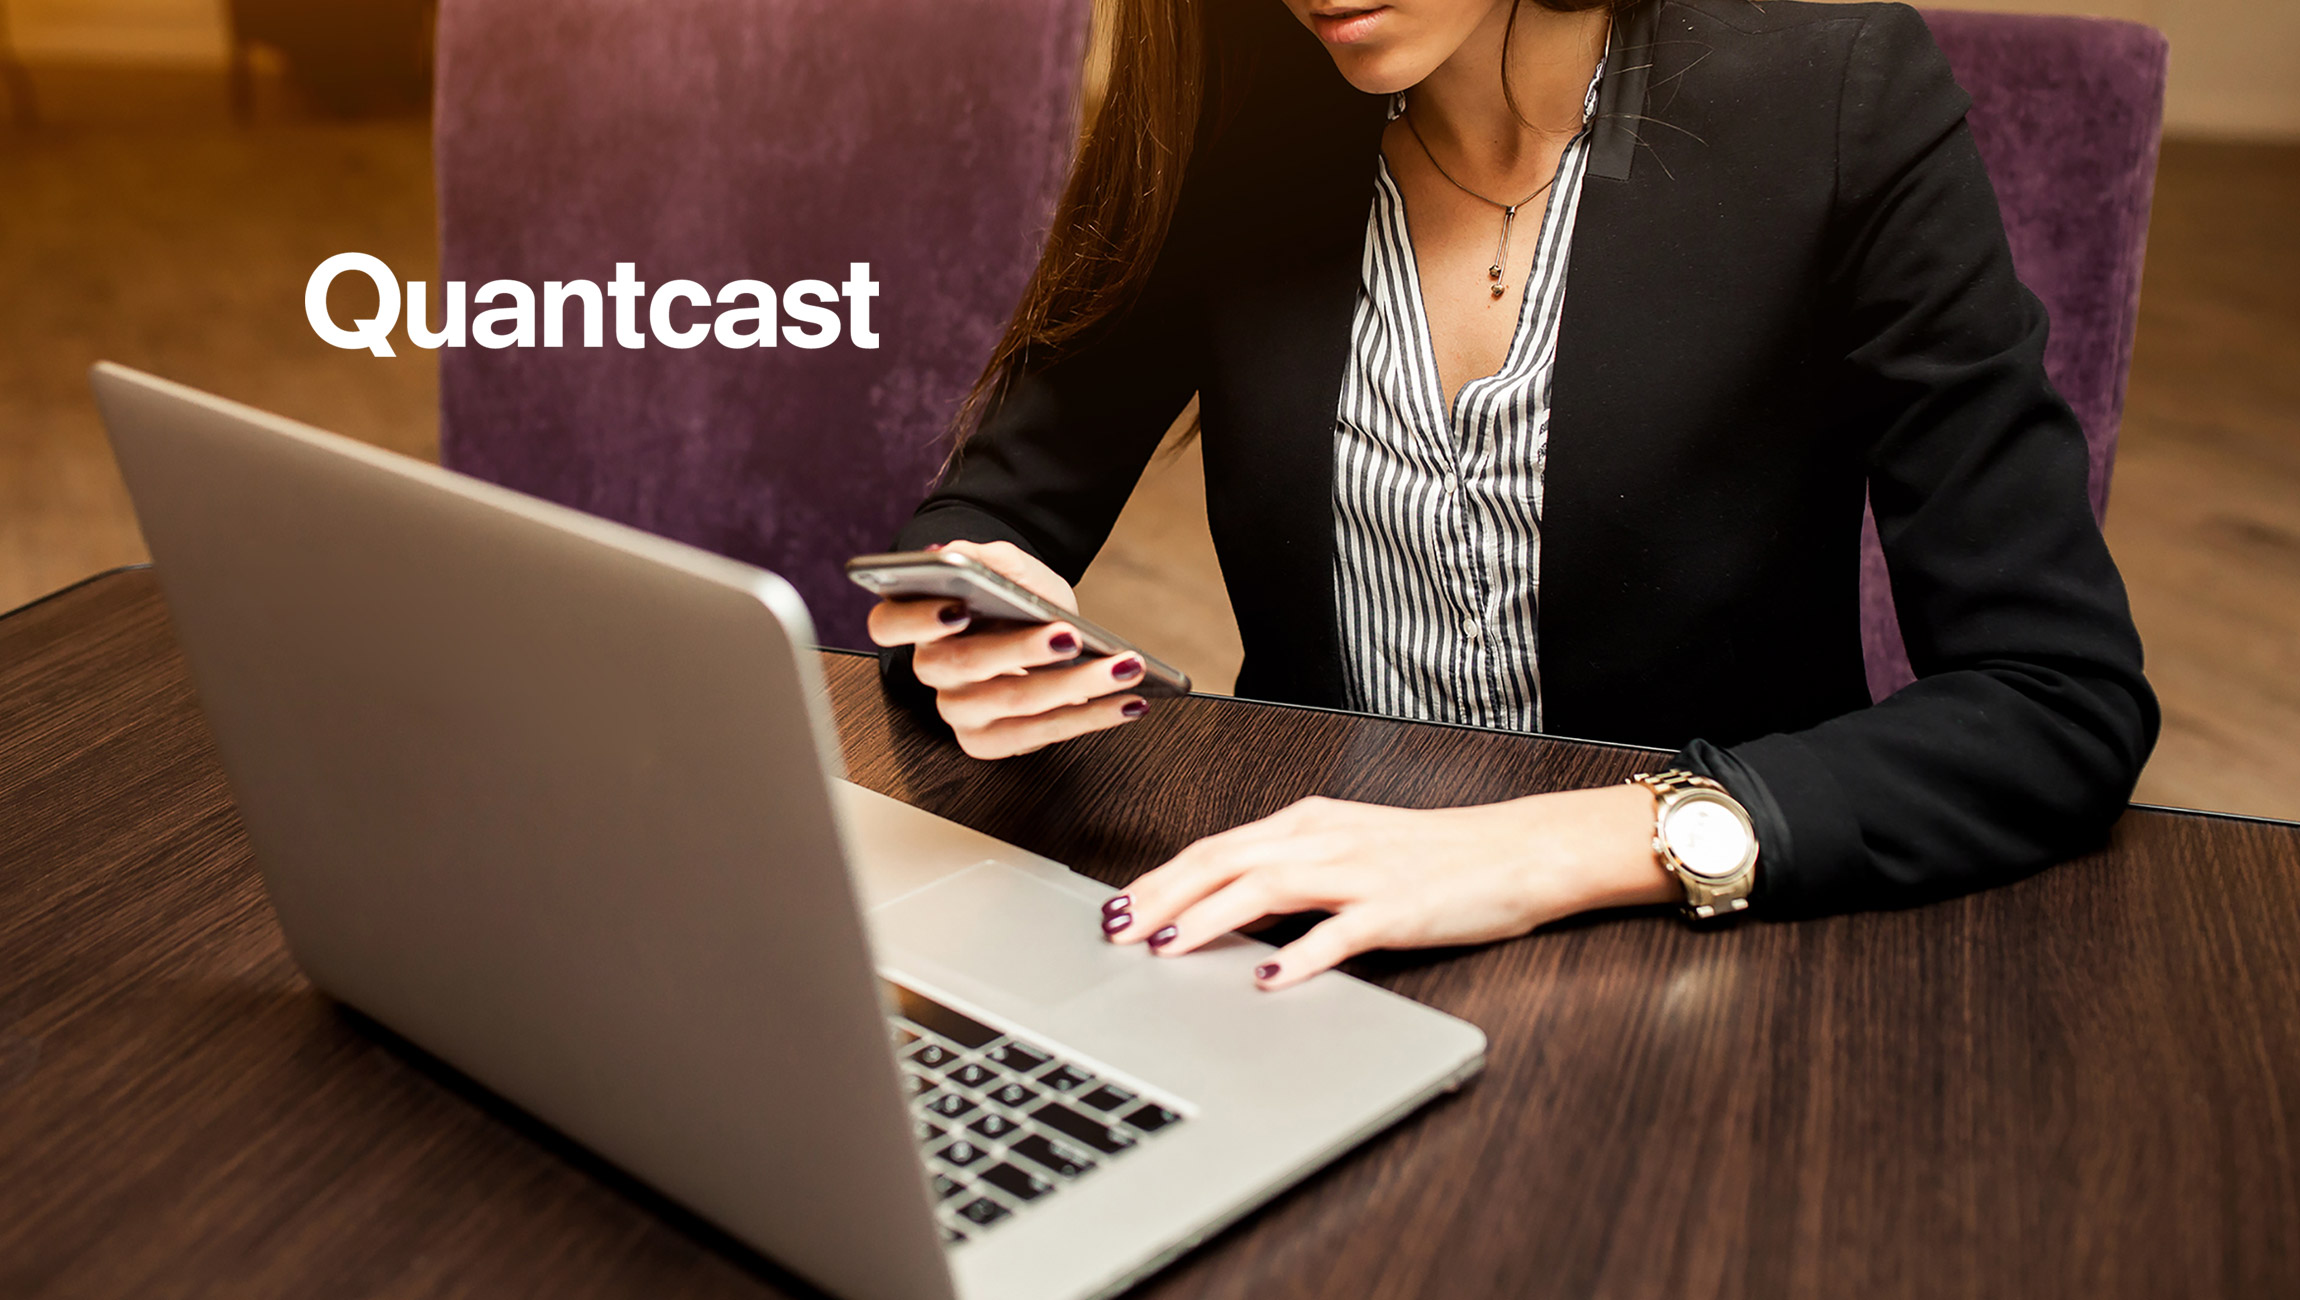 Marketers Need To Focus More On Psychology Than Technology Says Quantcast CTO Peter Day